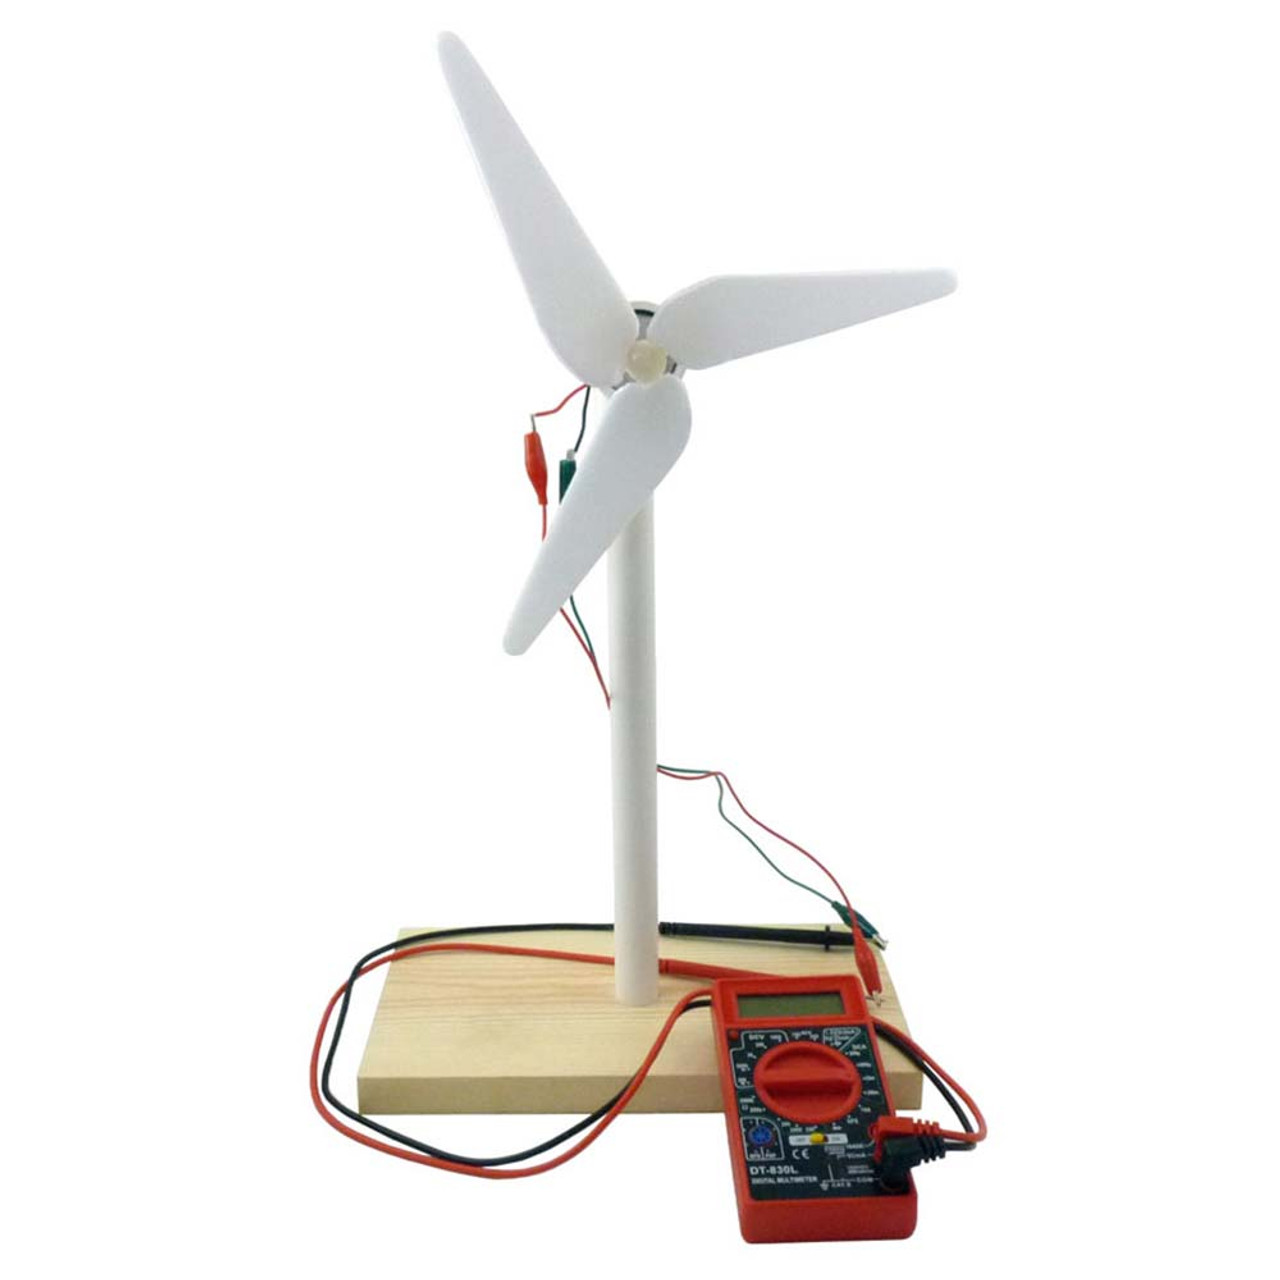 hight resolution of home built wind generator wiring wiring diagram datasource home built wind generator wiring